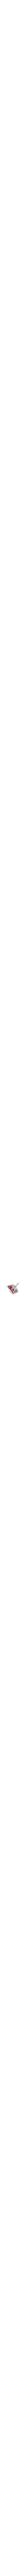 Silver Colorful Enamel Dreidel